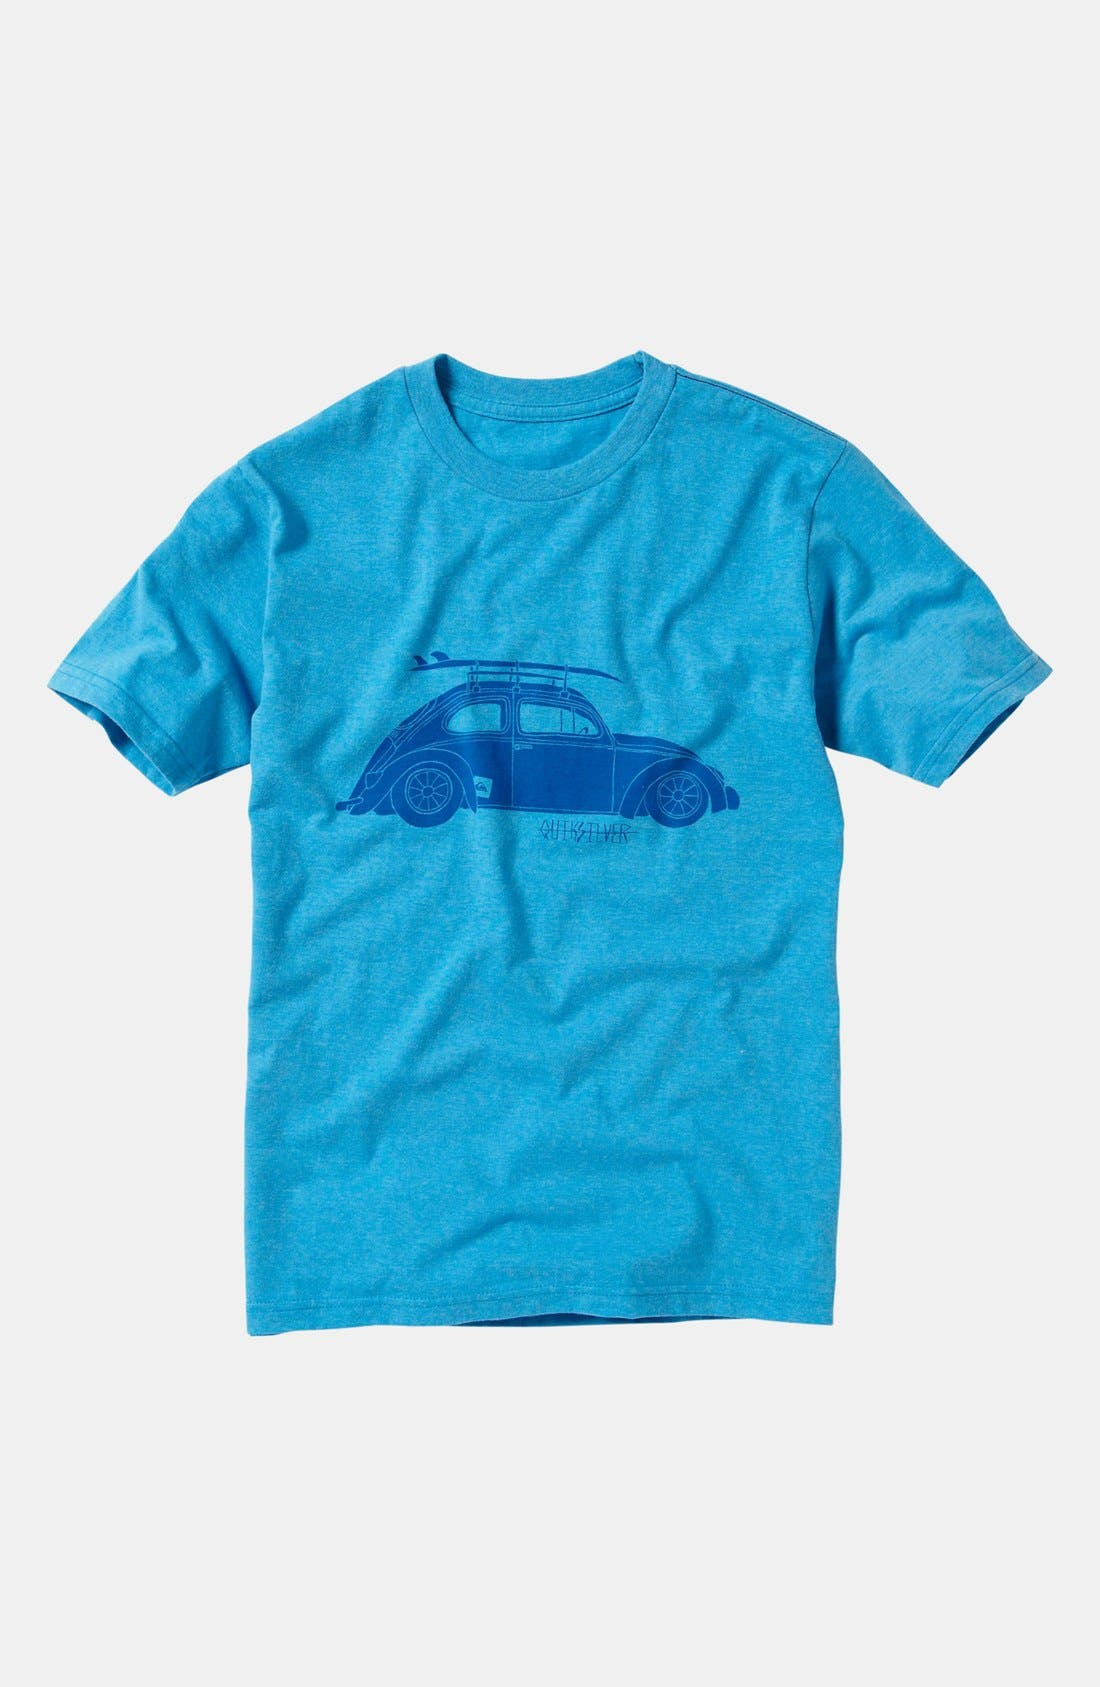 Main Image - Quiksilver 'Bugged Out' T-Shirt (Little Boys)